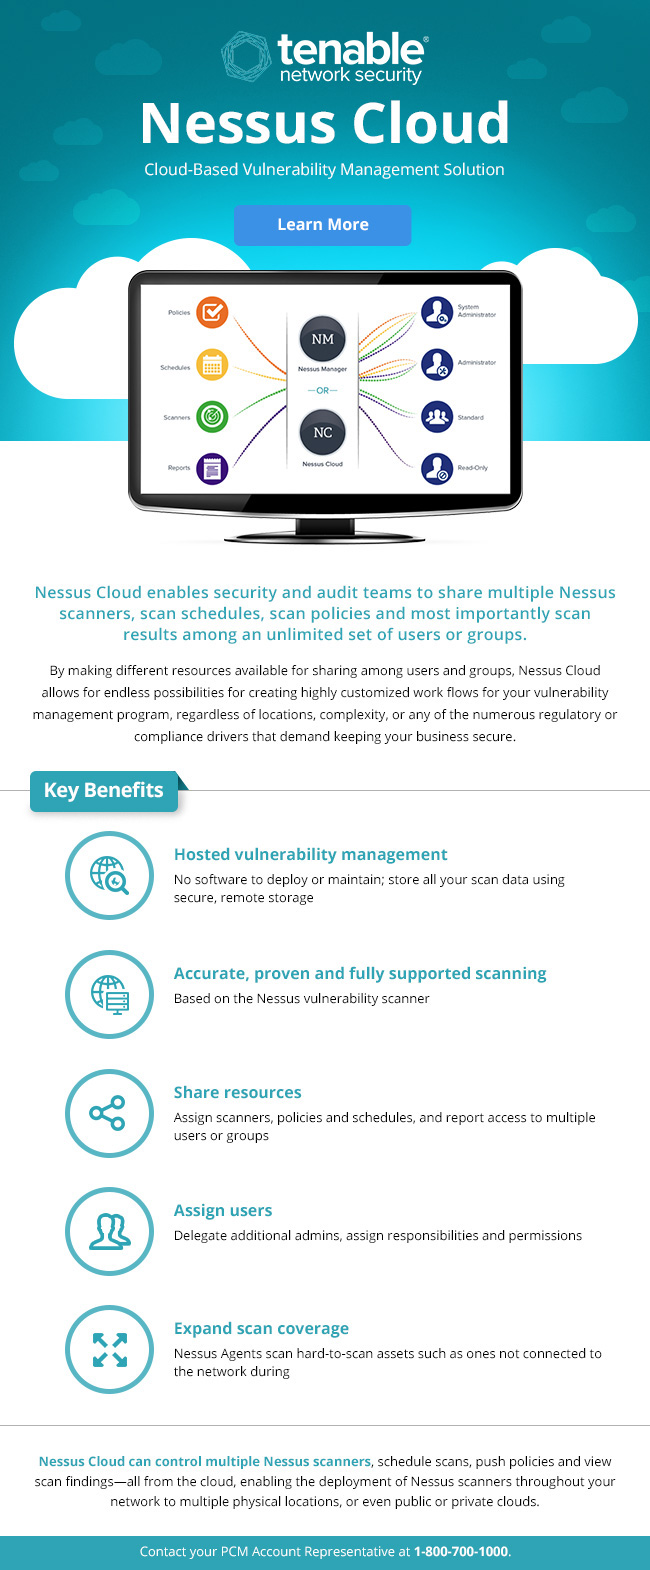 Tenable Network Security: Nessus Cloud on Behance